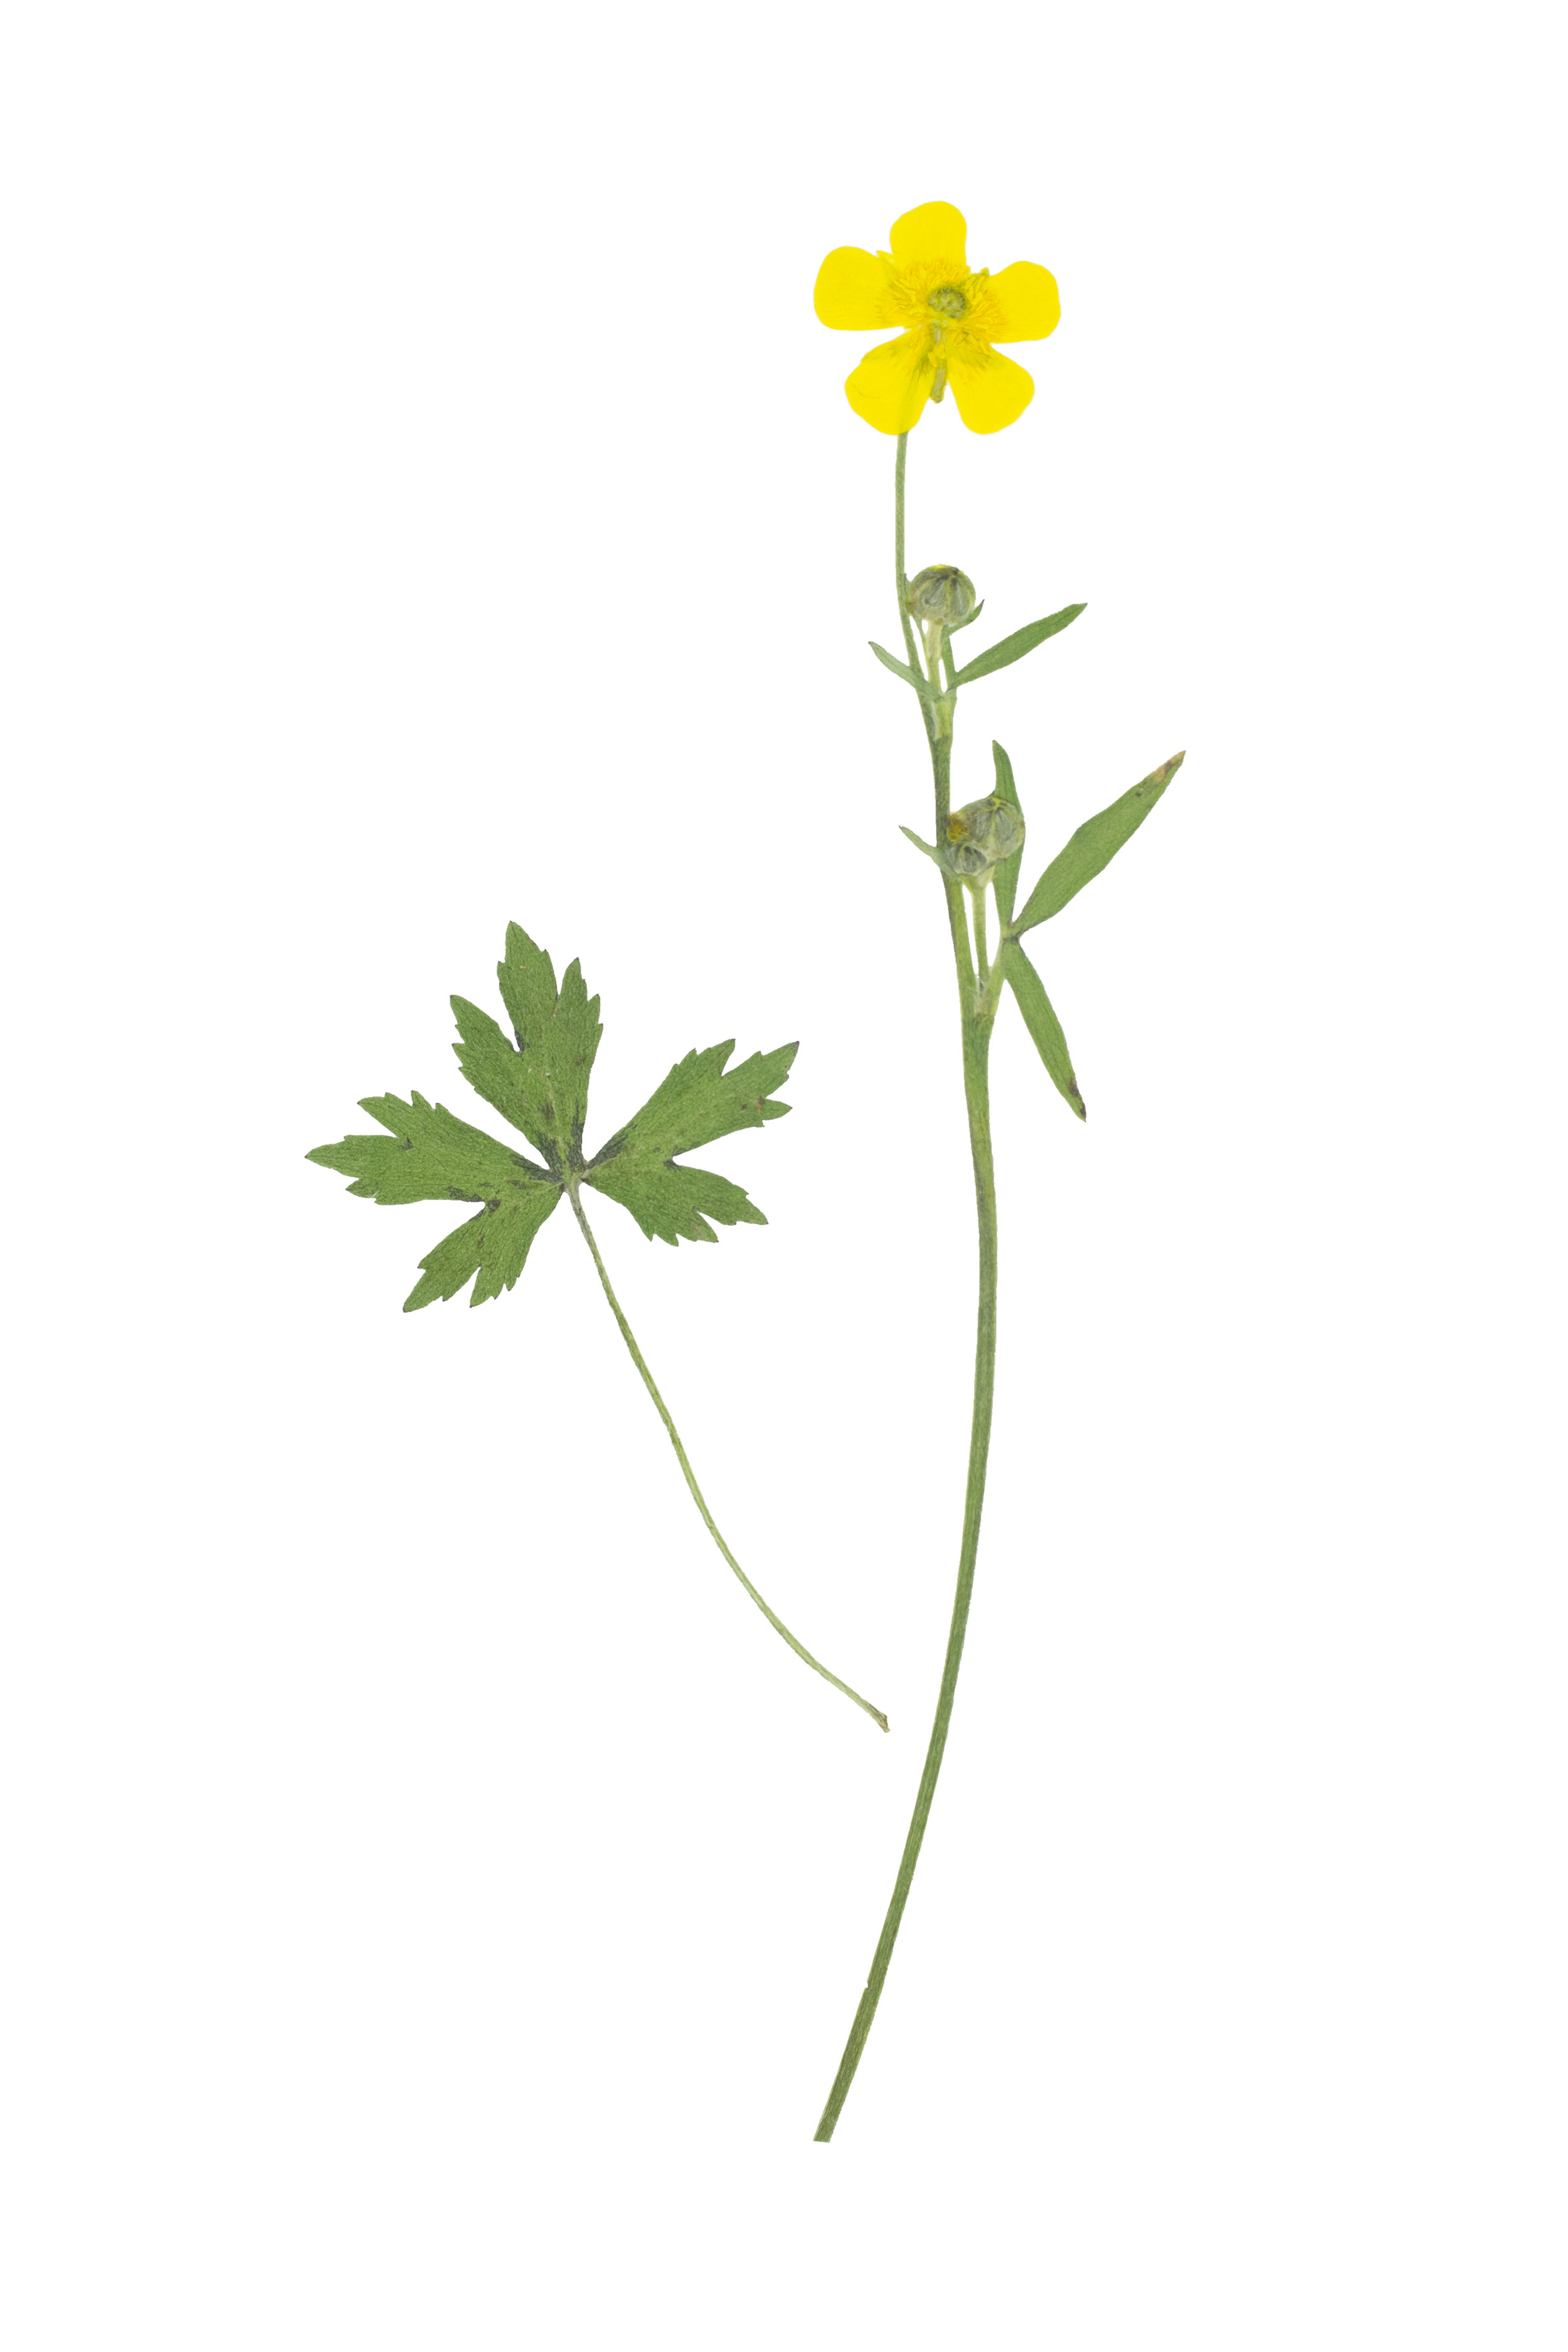 Meadow Buttercup / Ranunculus acris friesianus